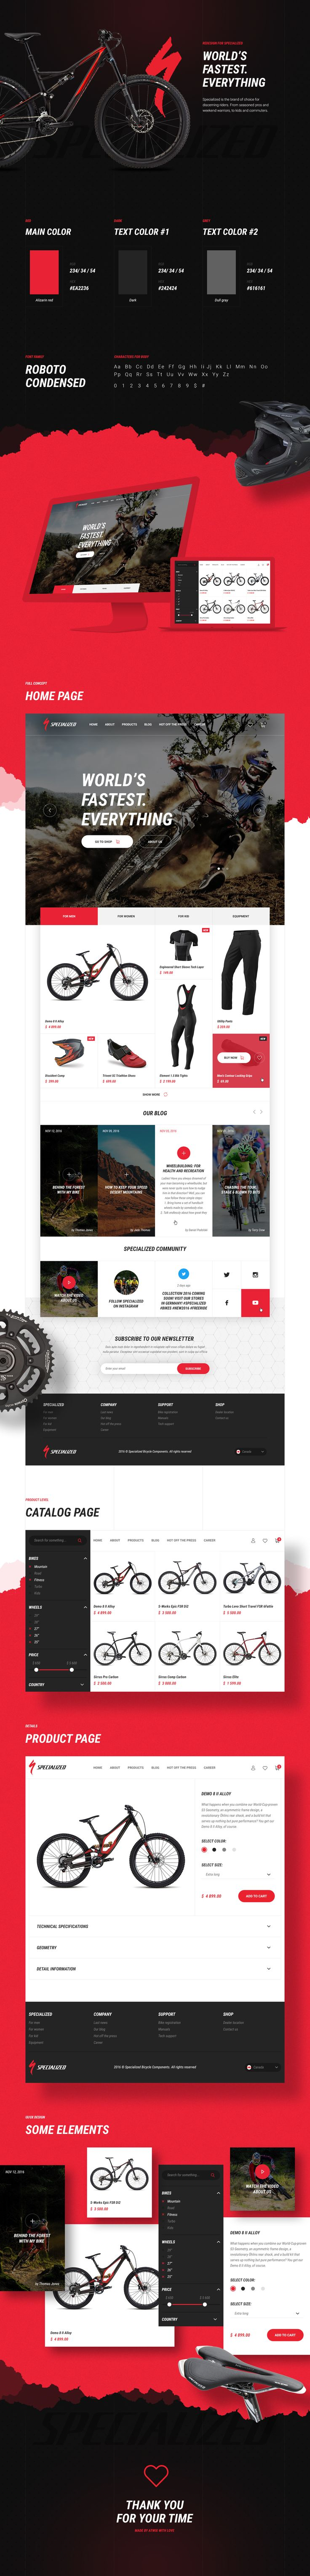 Specialized Concept on Behance